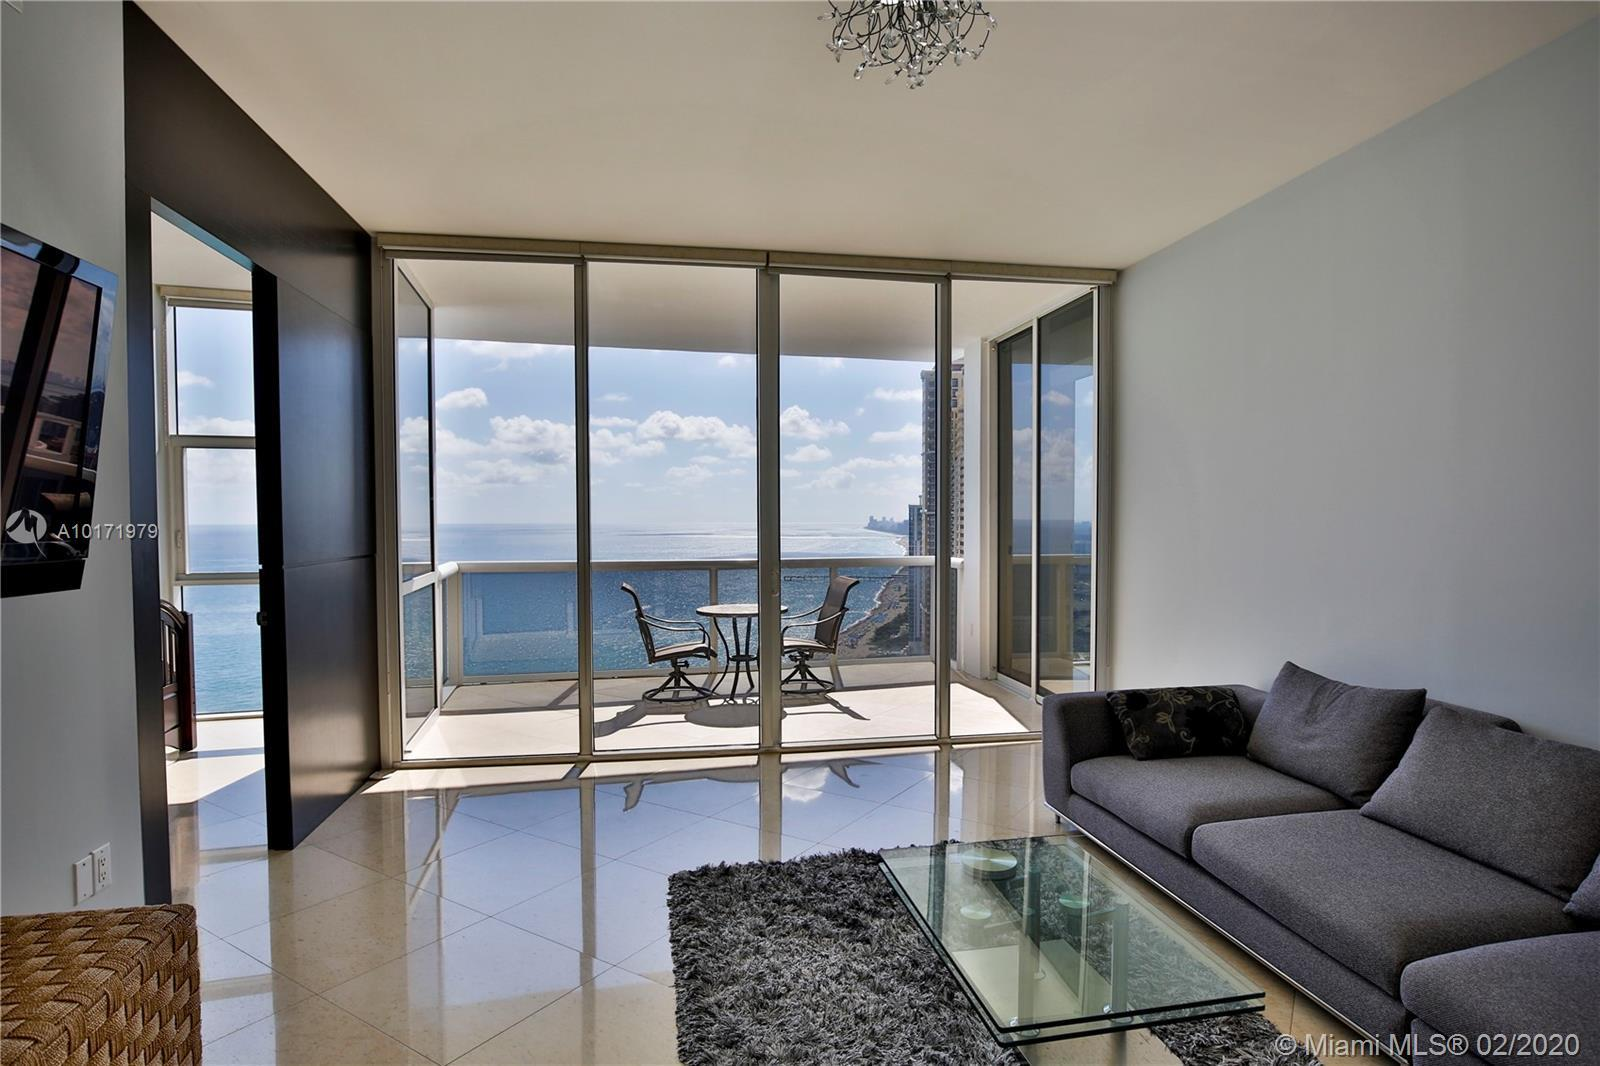 Beautiful residence 3 bedrooms/3,5 baths on 46th floor with breathtaking ocean and city views. Flow